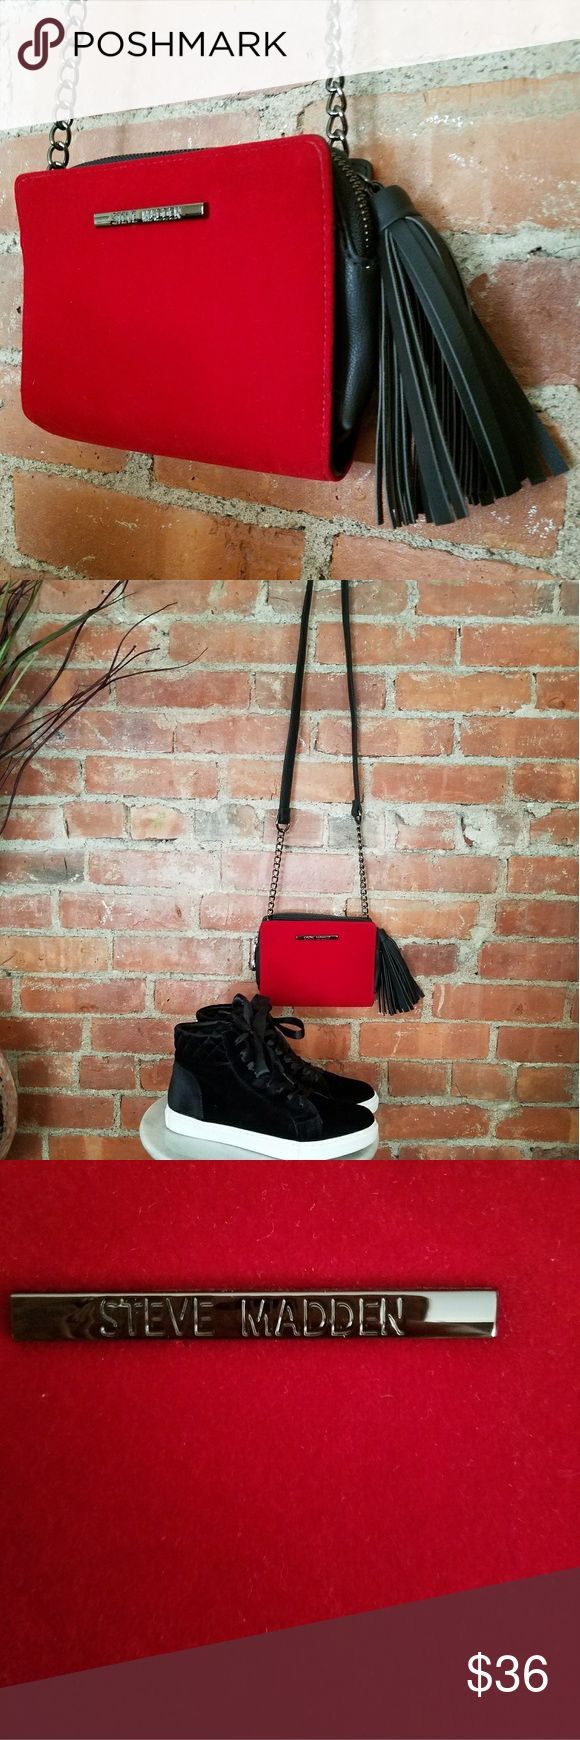 NWT STEVE MADDEN Purse This is a gorgeous purse!   The perfect red velvet with gun metal gray hardware!   The leather tassel adds more to this sweet bag!  Dressy with heels or edgy with these black velvet Steve Madden High Tops!!  Available in a separate listing, take a look! Steve Madden Bags Mini Bags